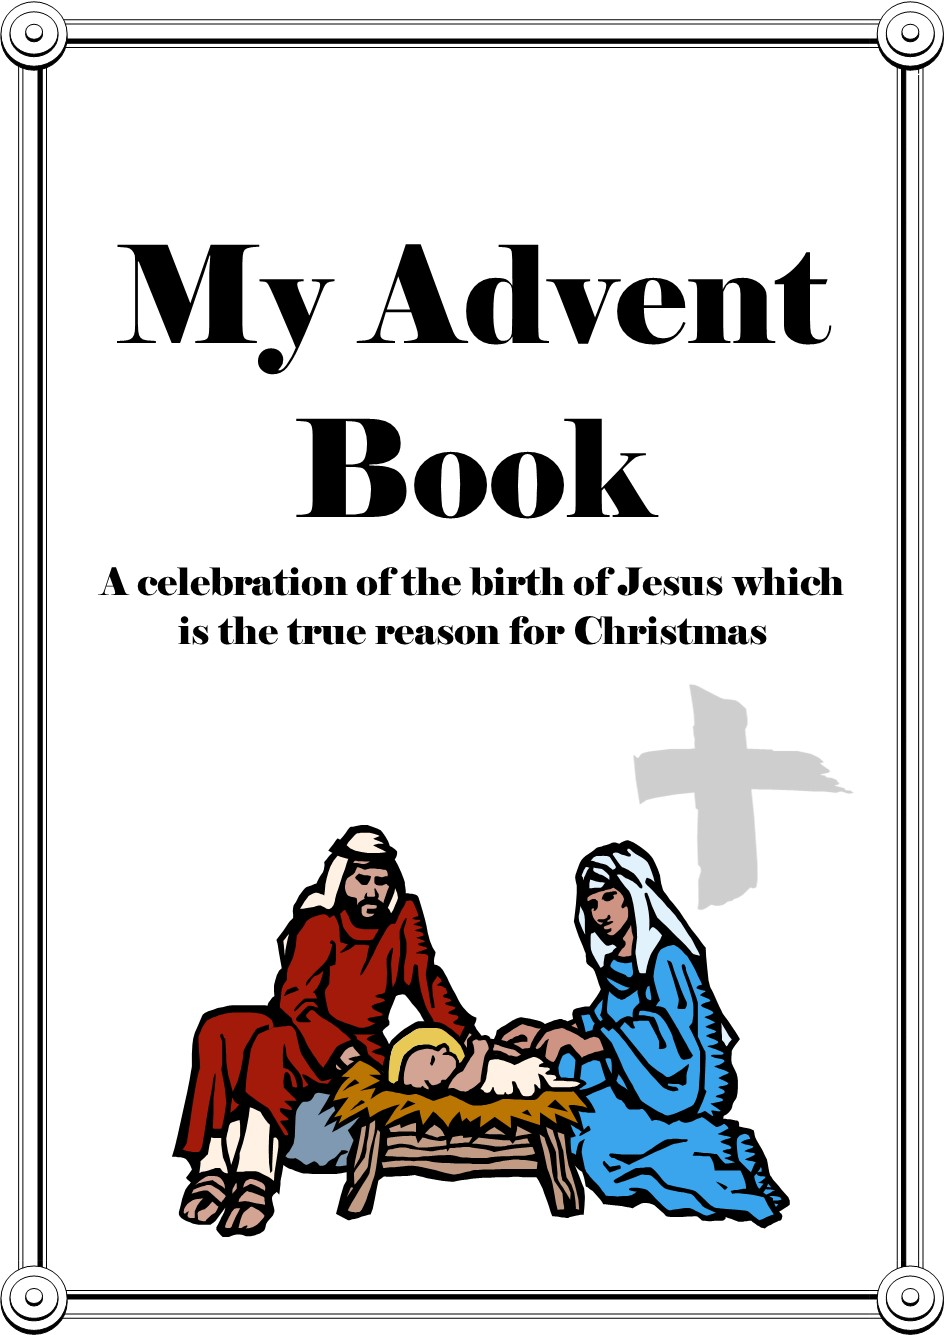 My Advent Book